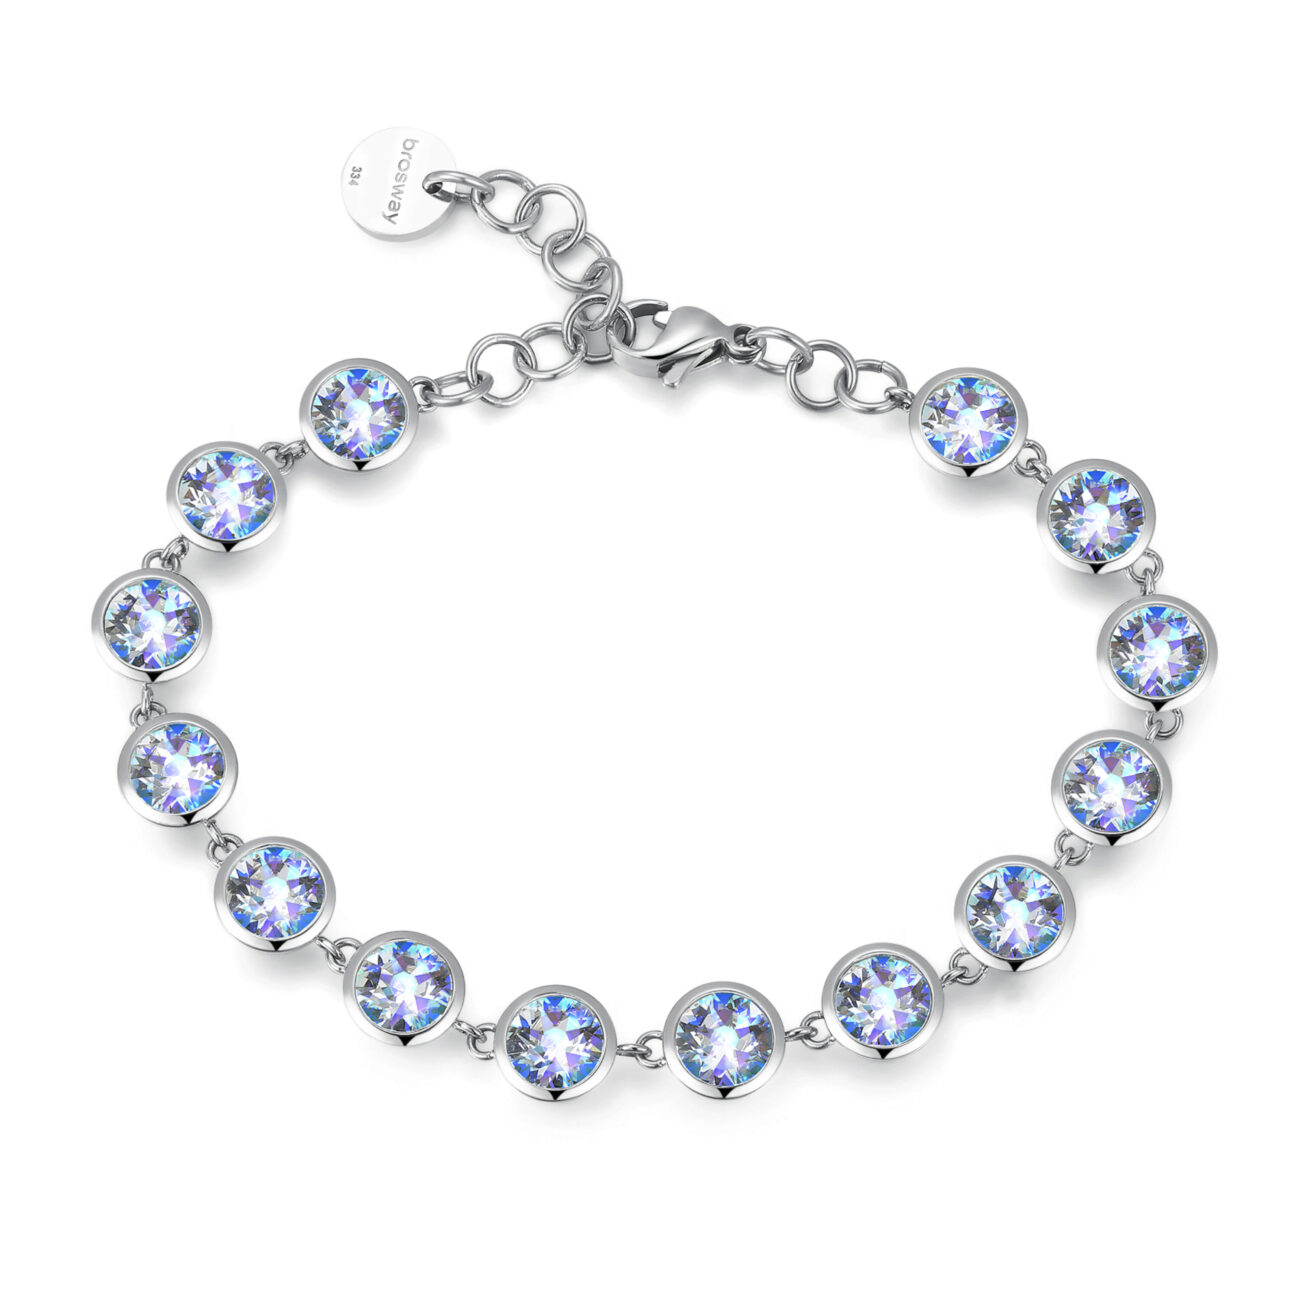 316L stainless steel bracelet with aquamarine vitrail light crystals.